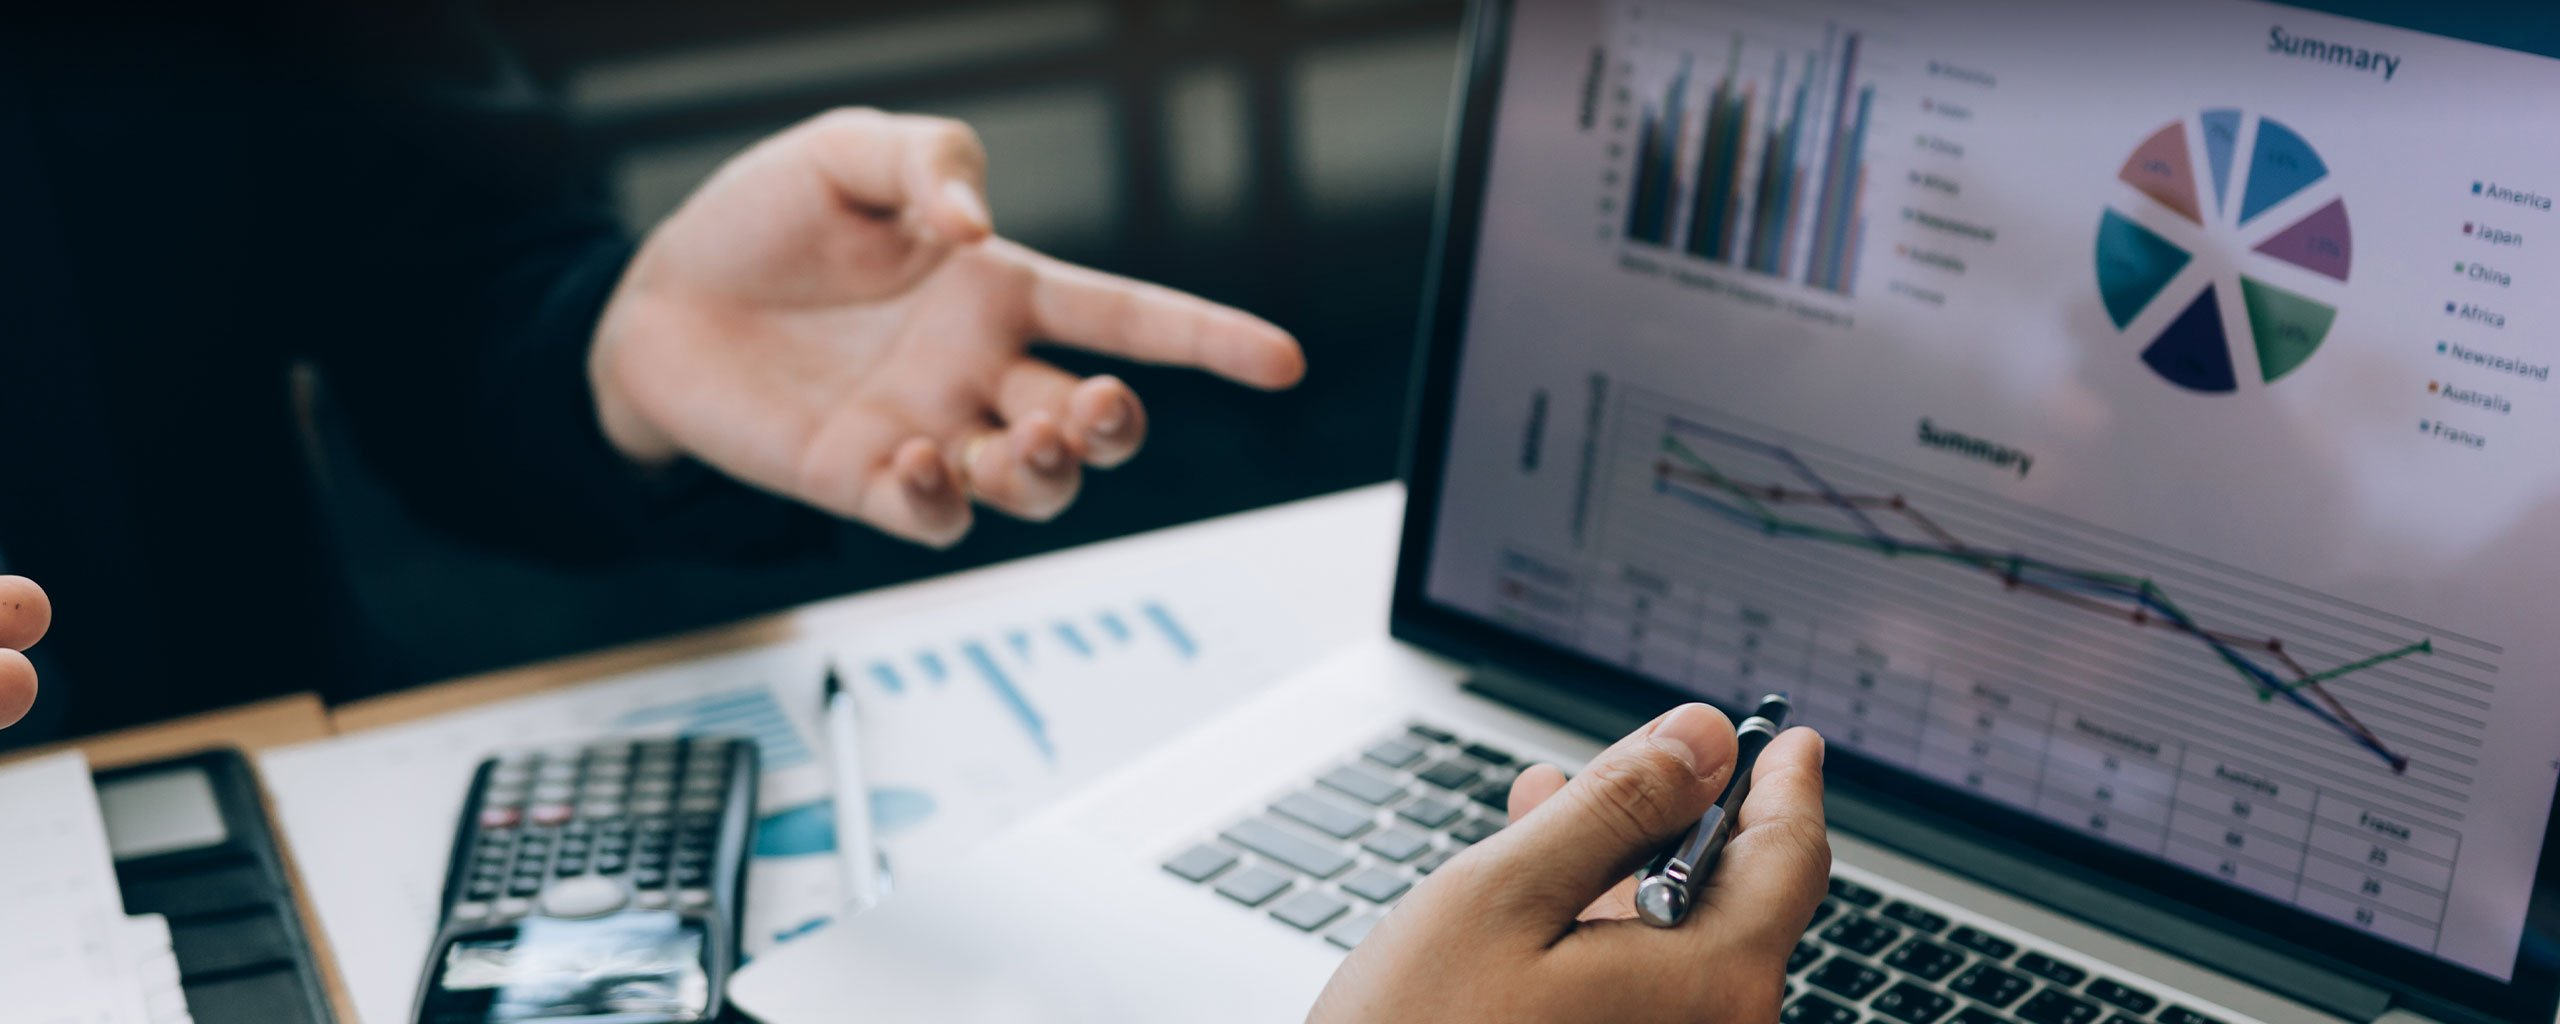 Don't Make These 3 Mistakes When Using Data-driven Marketing